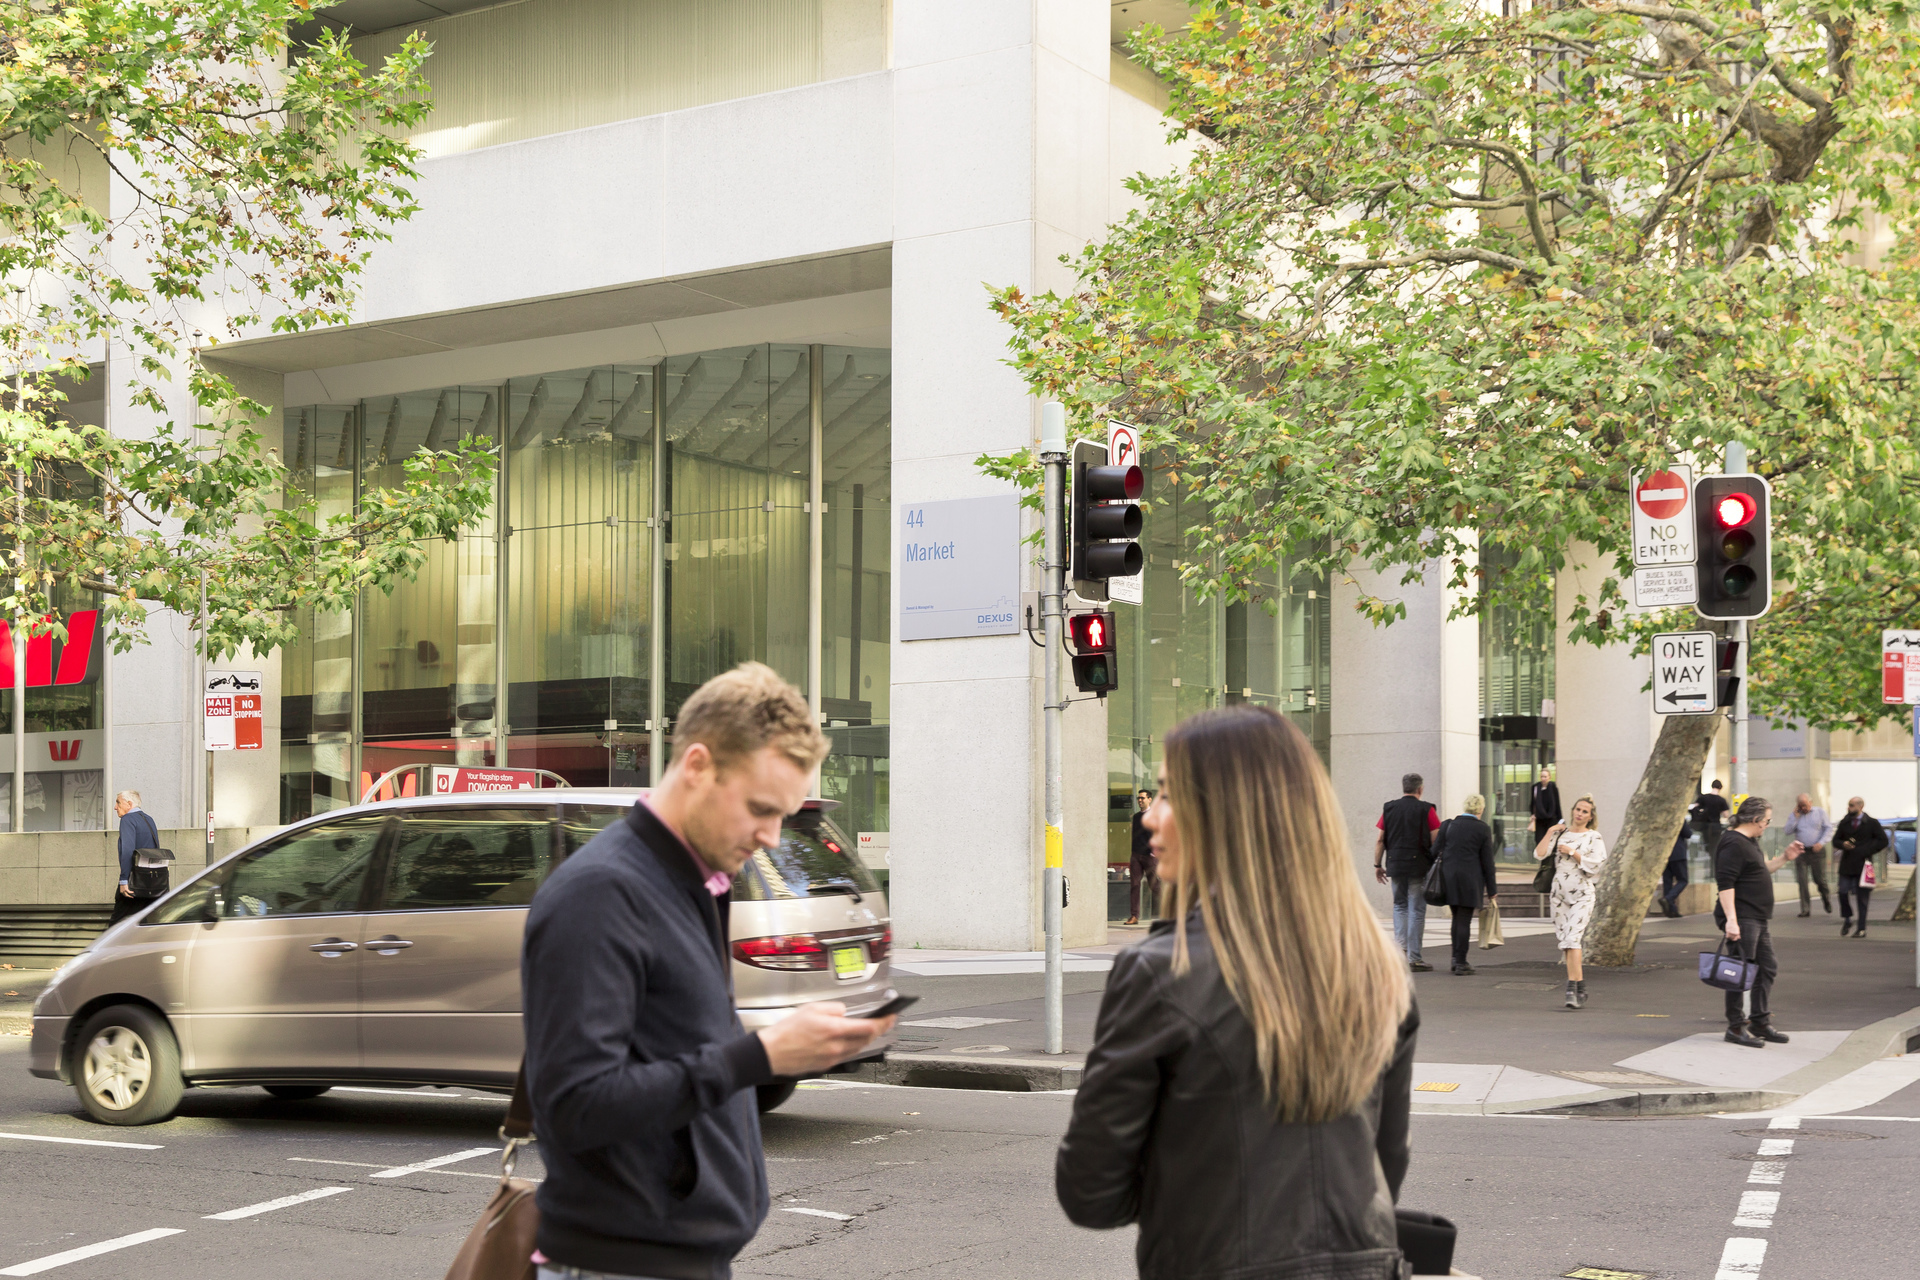 5-STAR OFFICES LOCATED IN THE HEART OF SYDNEY CITY FOR 4-PERSON